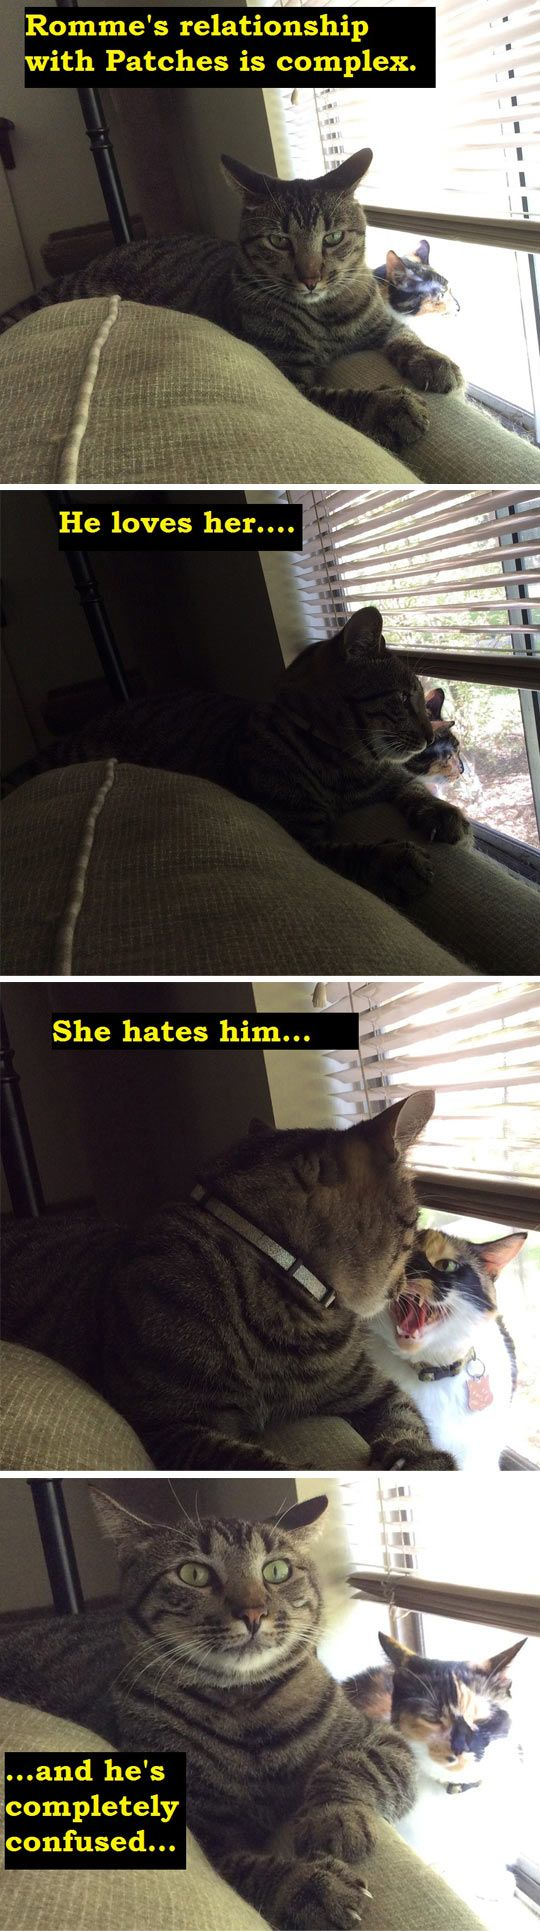 This Cat Has It Rough // tags: funny pictures - funny photos - funny images - funny pics - funny quotes - #lol #humor #funnypictures